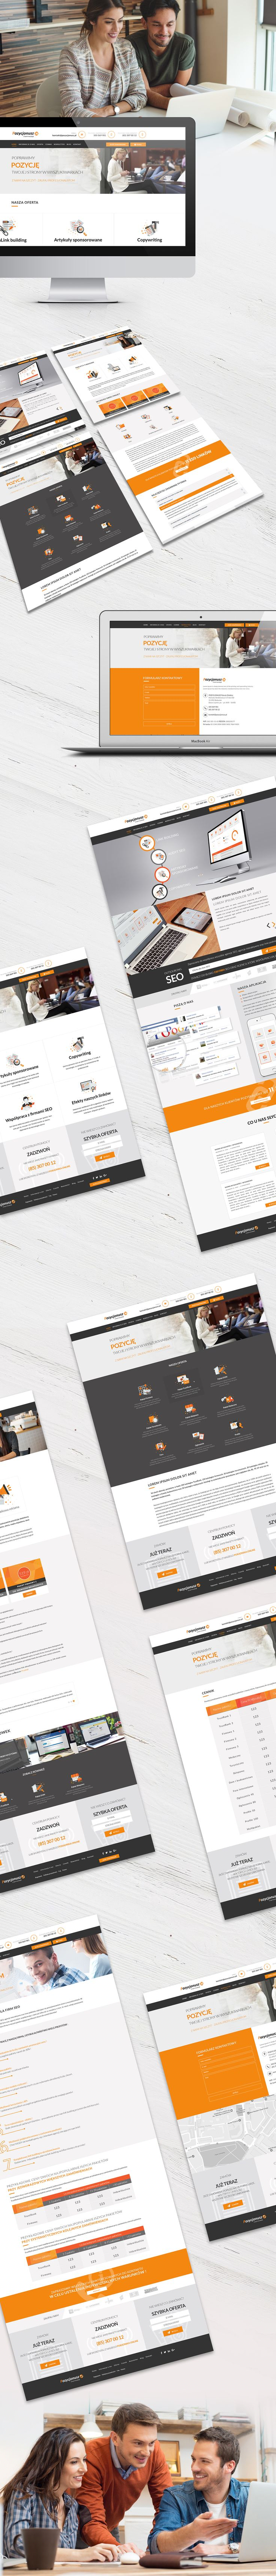 Responsive webiste for SEO agency, check out more projects http://wiwiagency.com/portfolio/